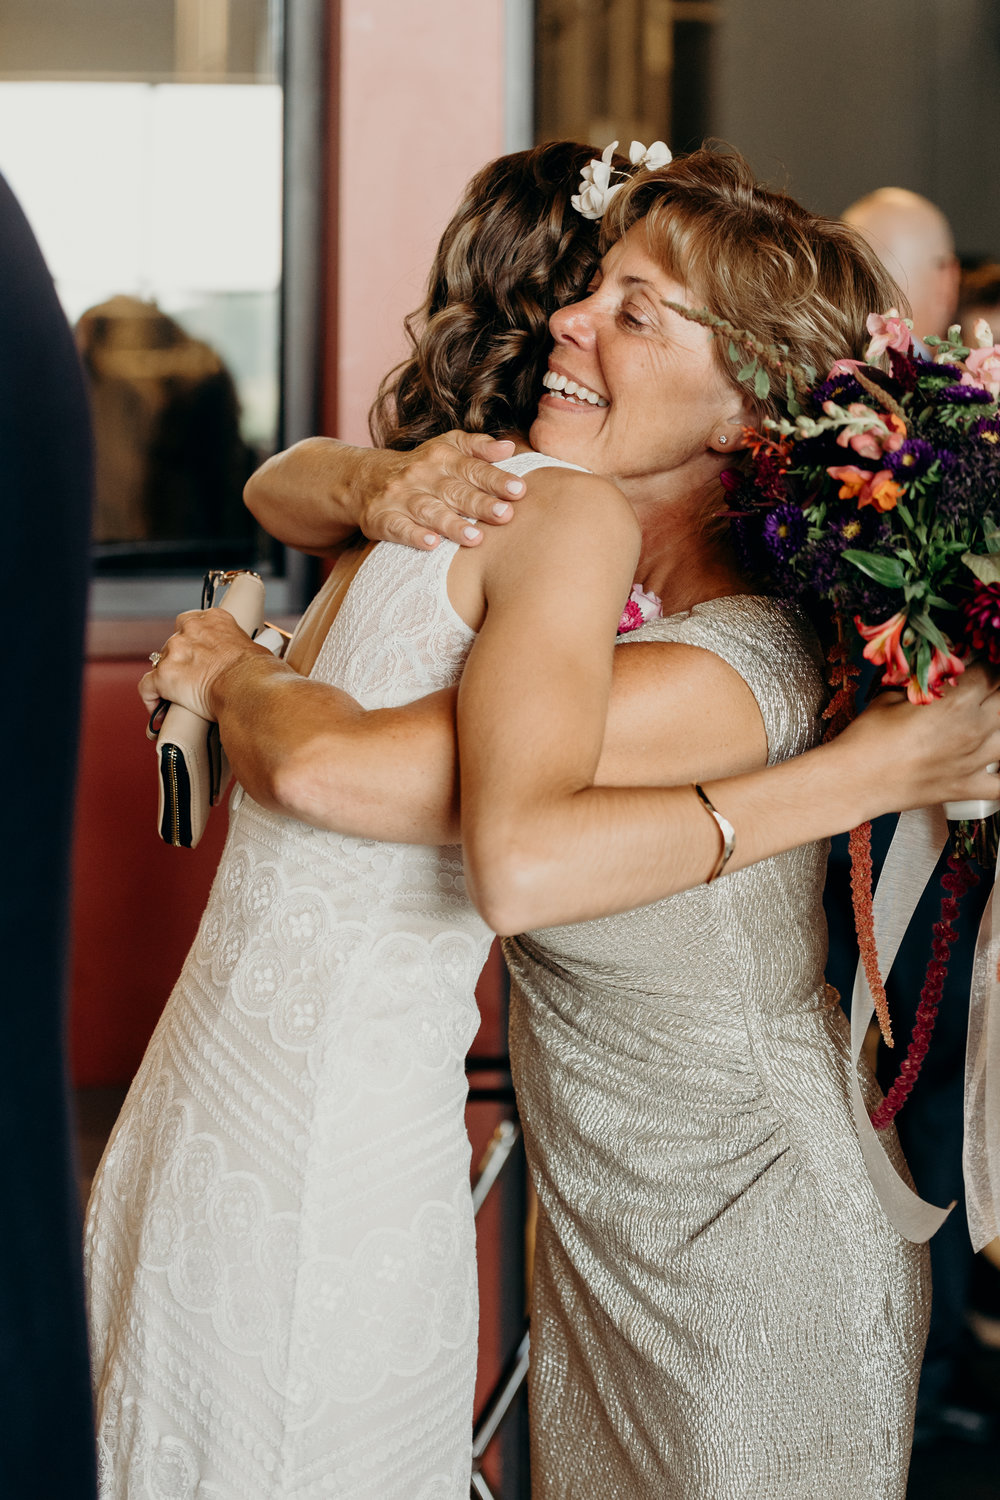 Mother of groom hugs her new daughter-in-law.